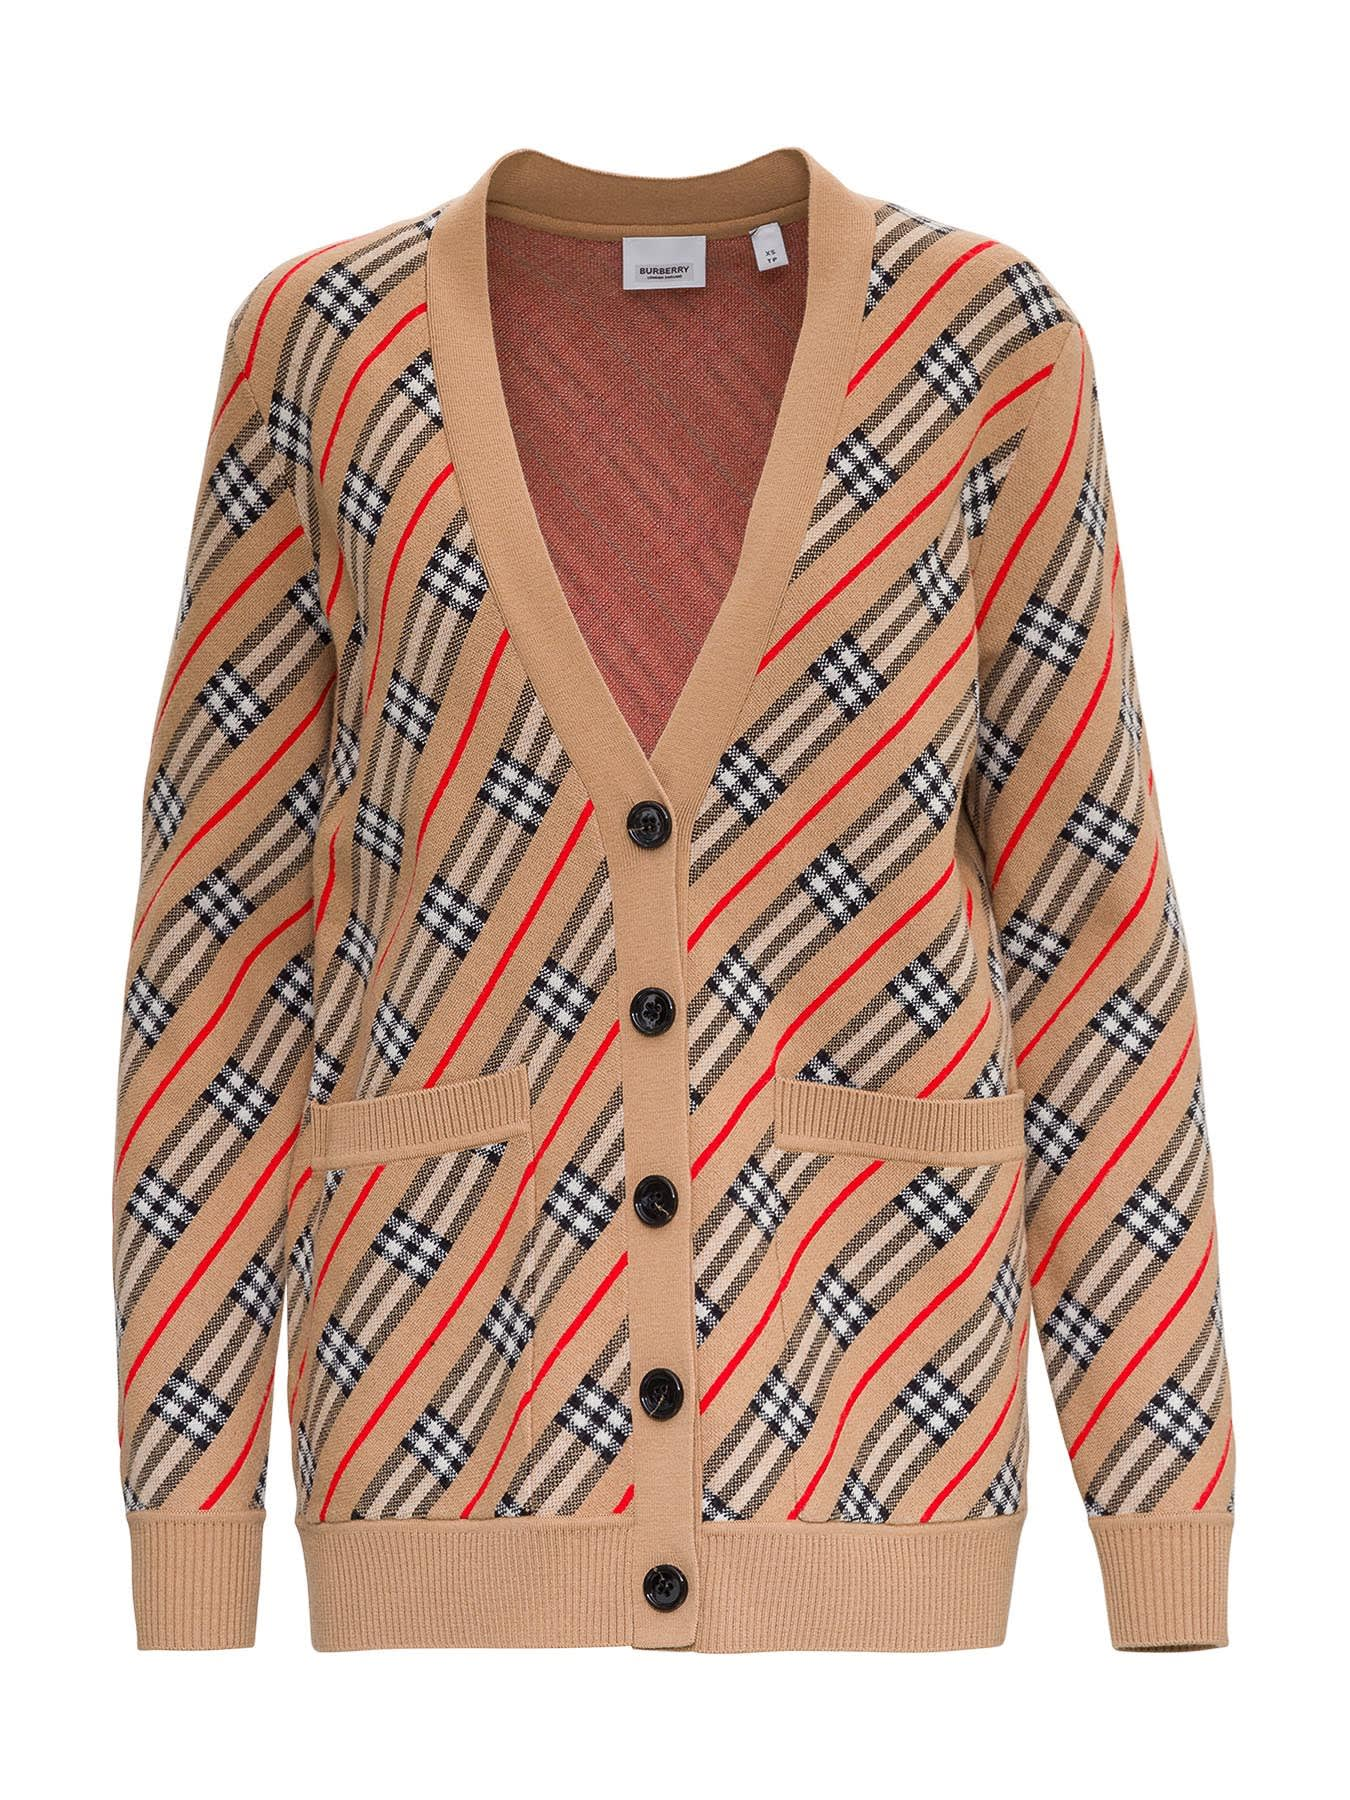 Burberry WOOL BLEND CARDIGAN WITH STRIPE PATTERN